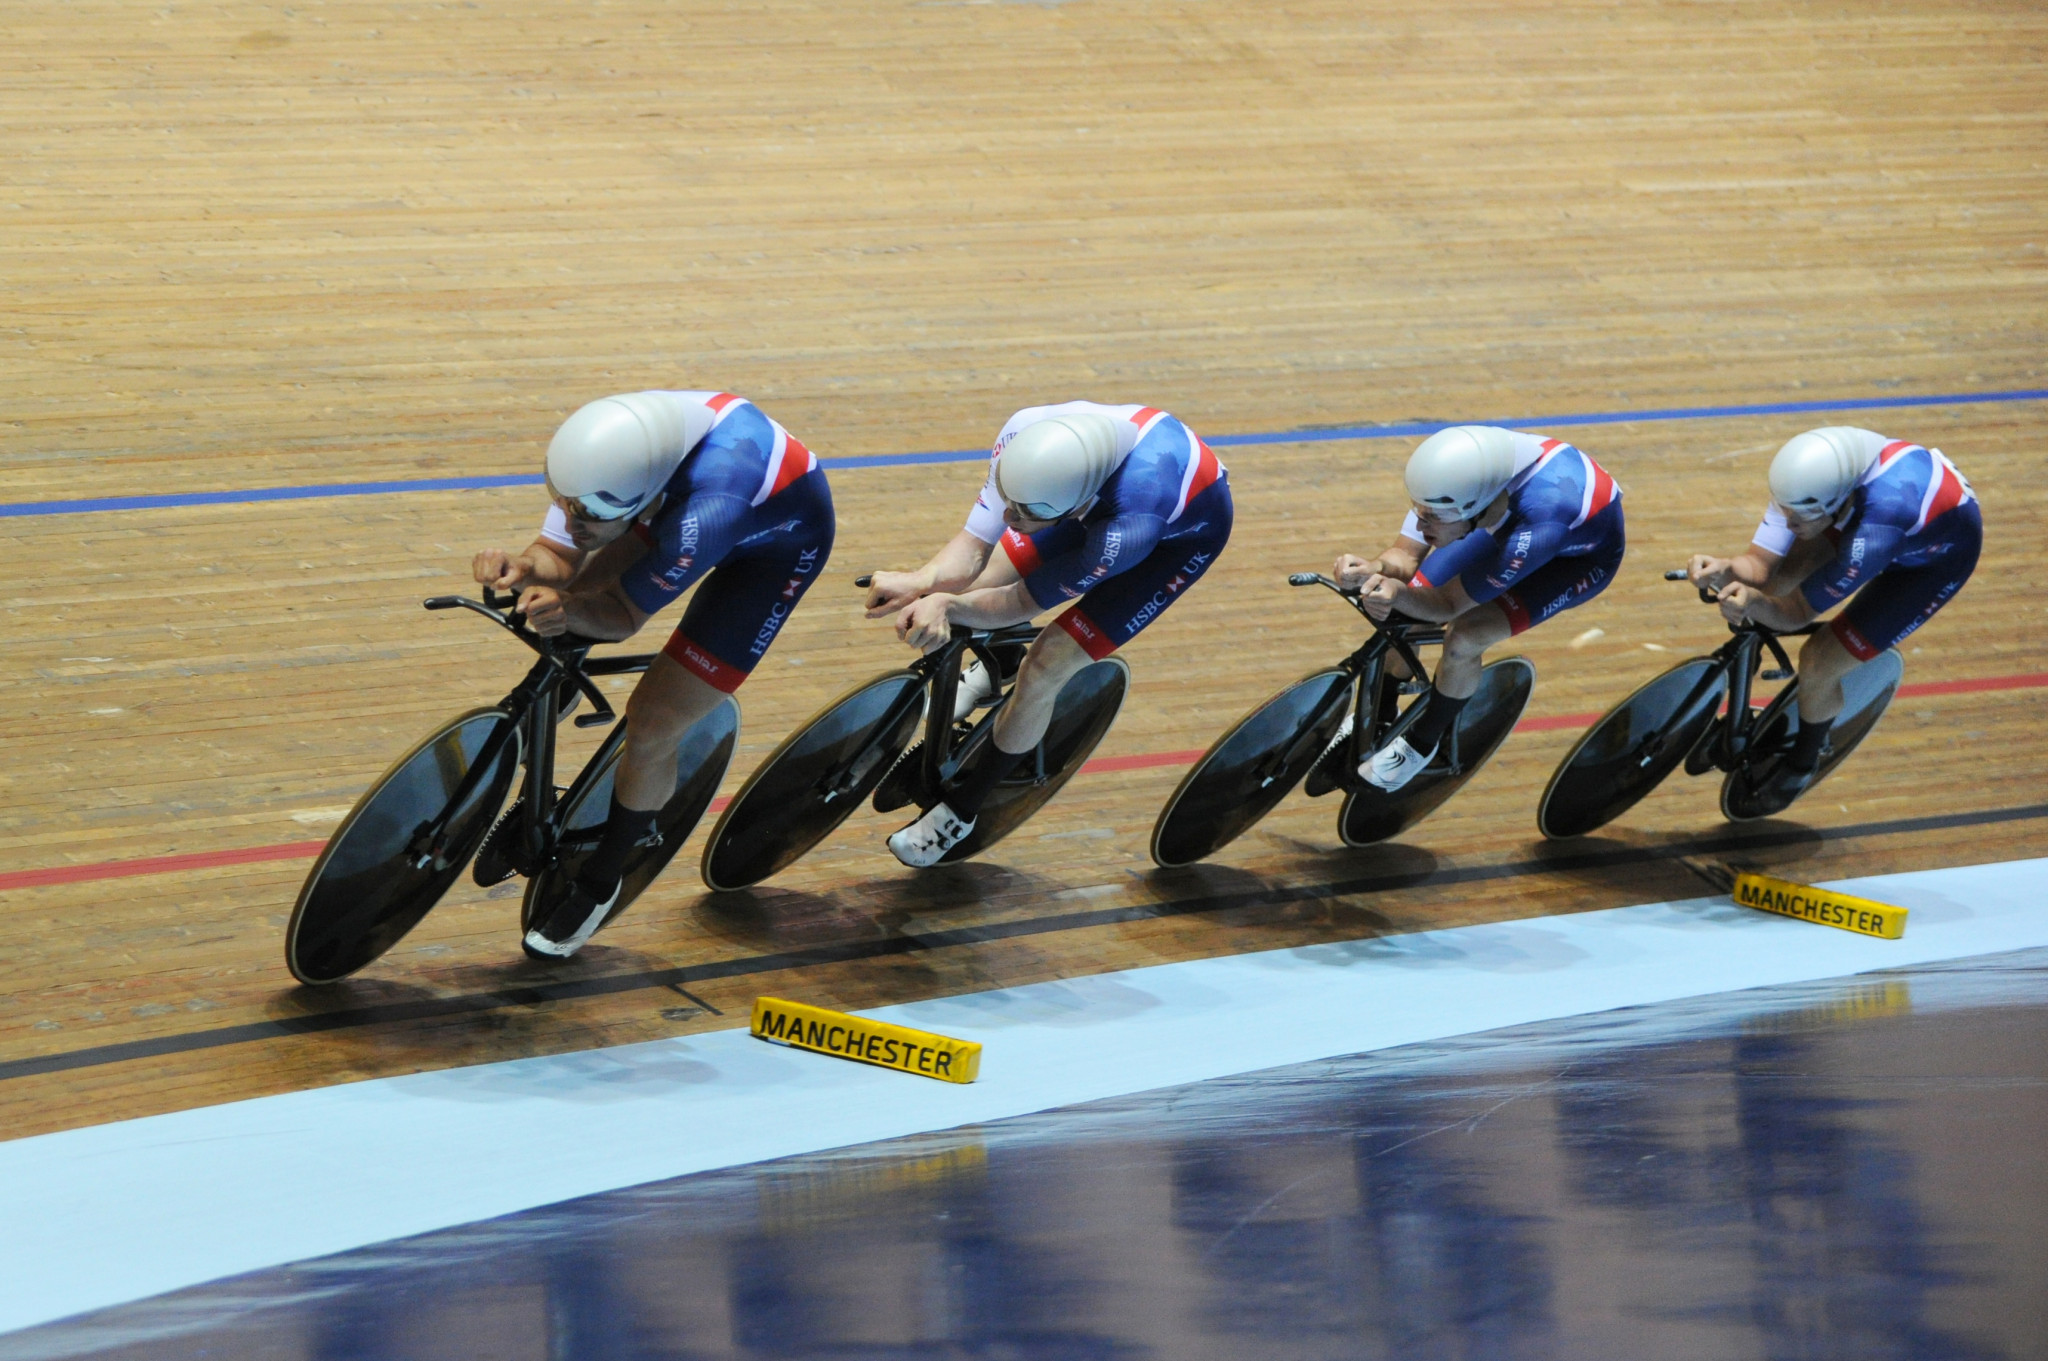 Hosts celebrate double gold on second day at UCI Track Cycling World Cup in Manchester